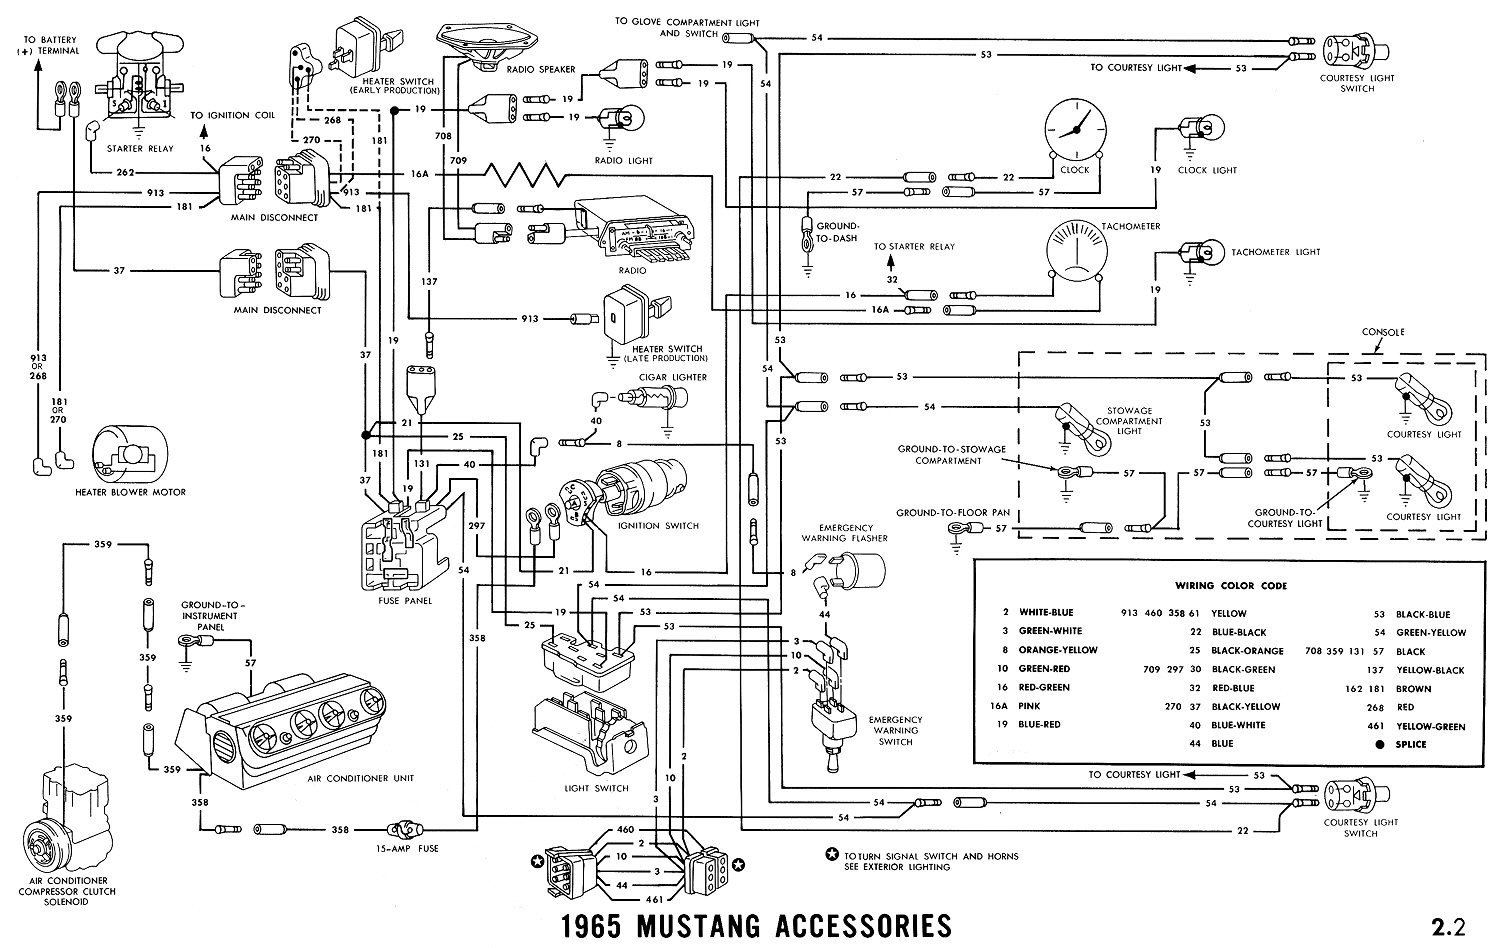 1965i 1965 mustang wiring diagrams average joe restoration 2006 ford mustang gt wiring diagram at bayanpartner.co